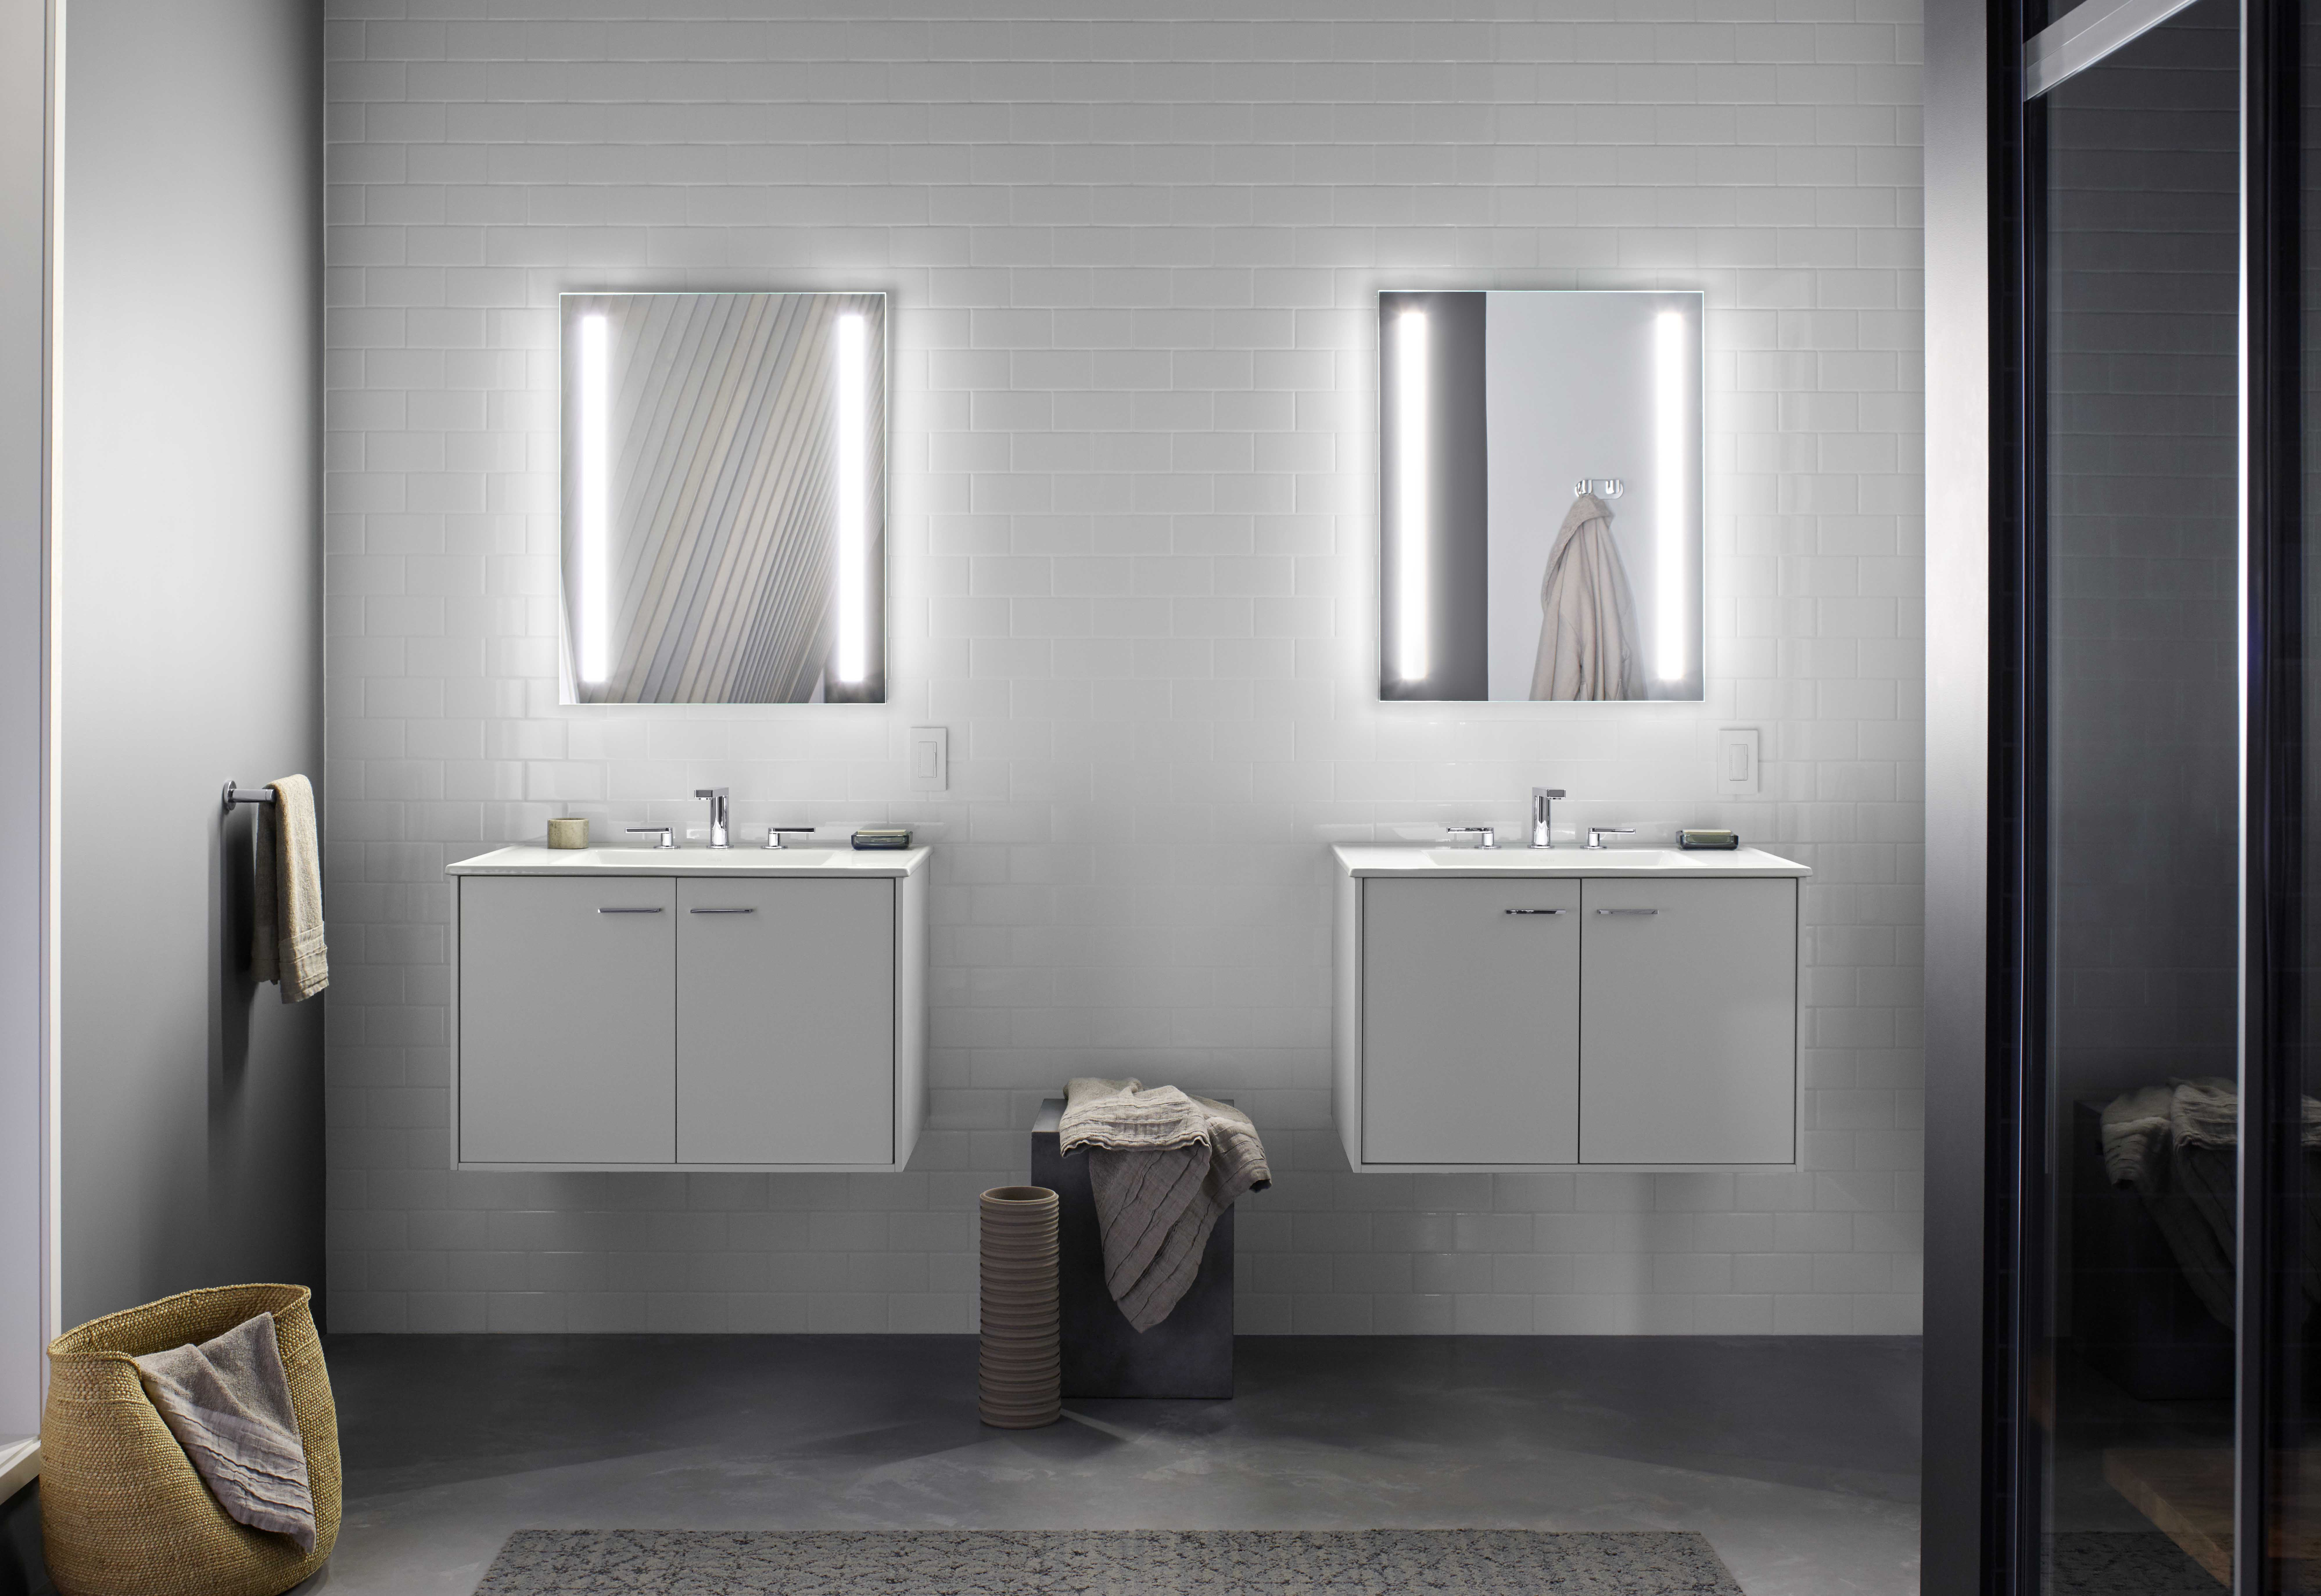 Jute® Vanity     Verdera lighted medicine cabinet     Composed Faucet     Wall-hung vanities enhance the room's contemporary design and spaciousness.